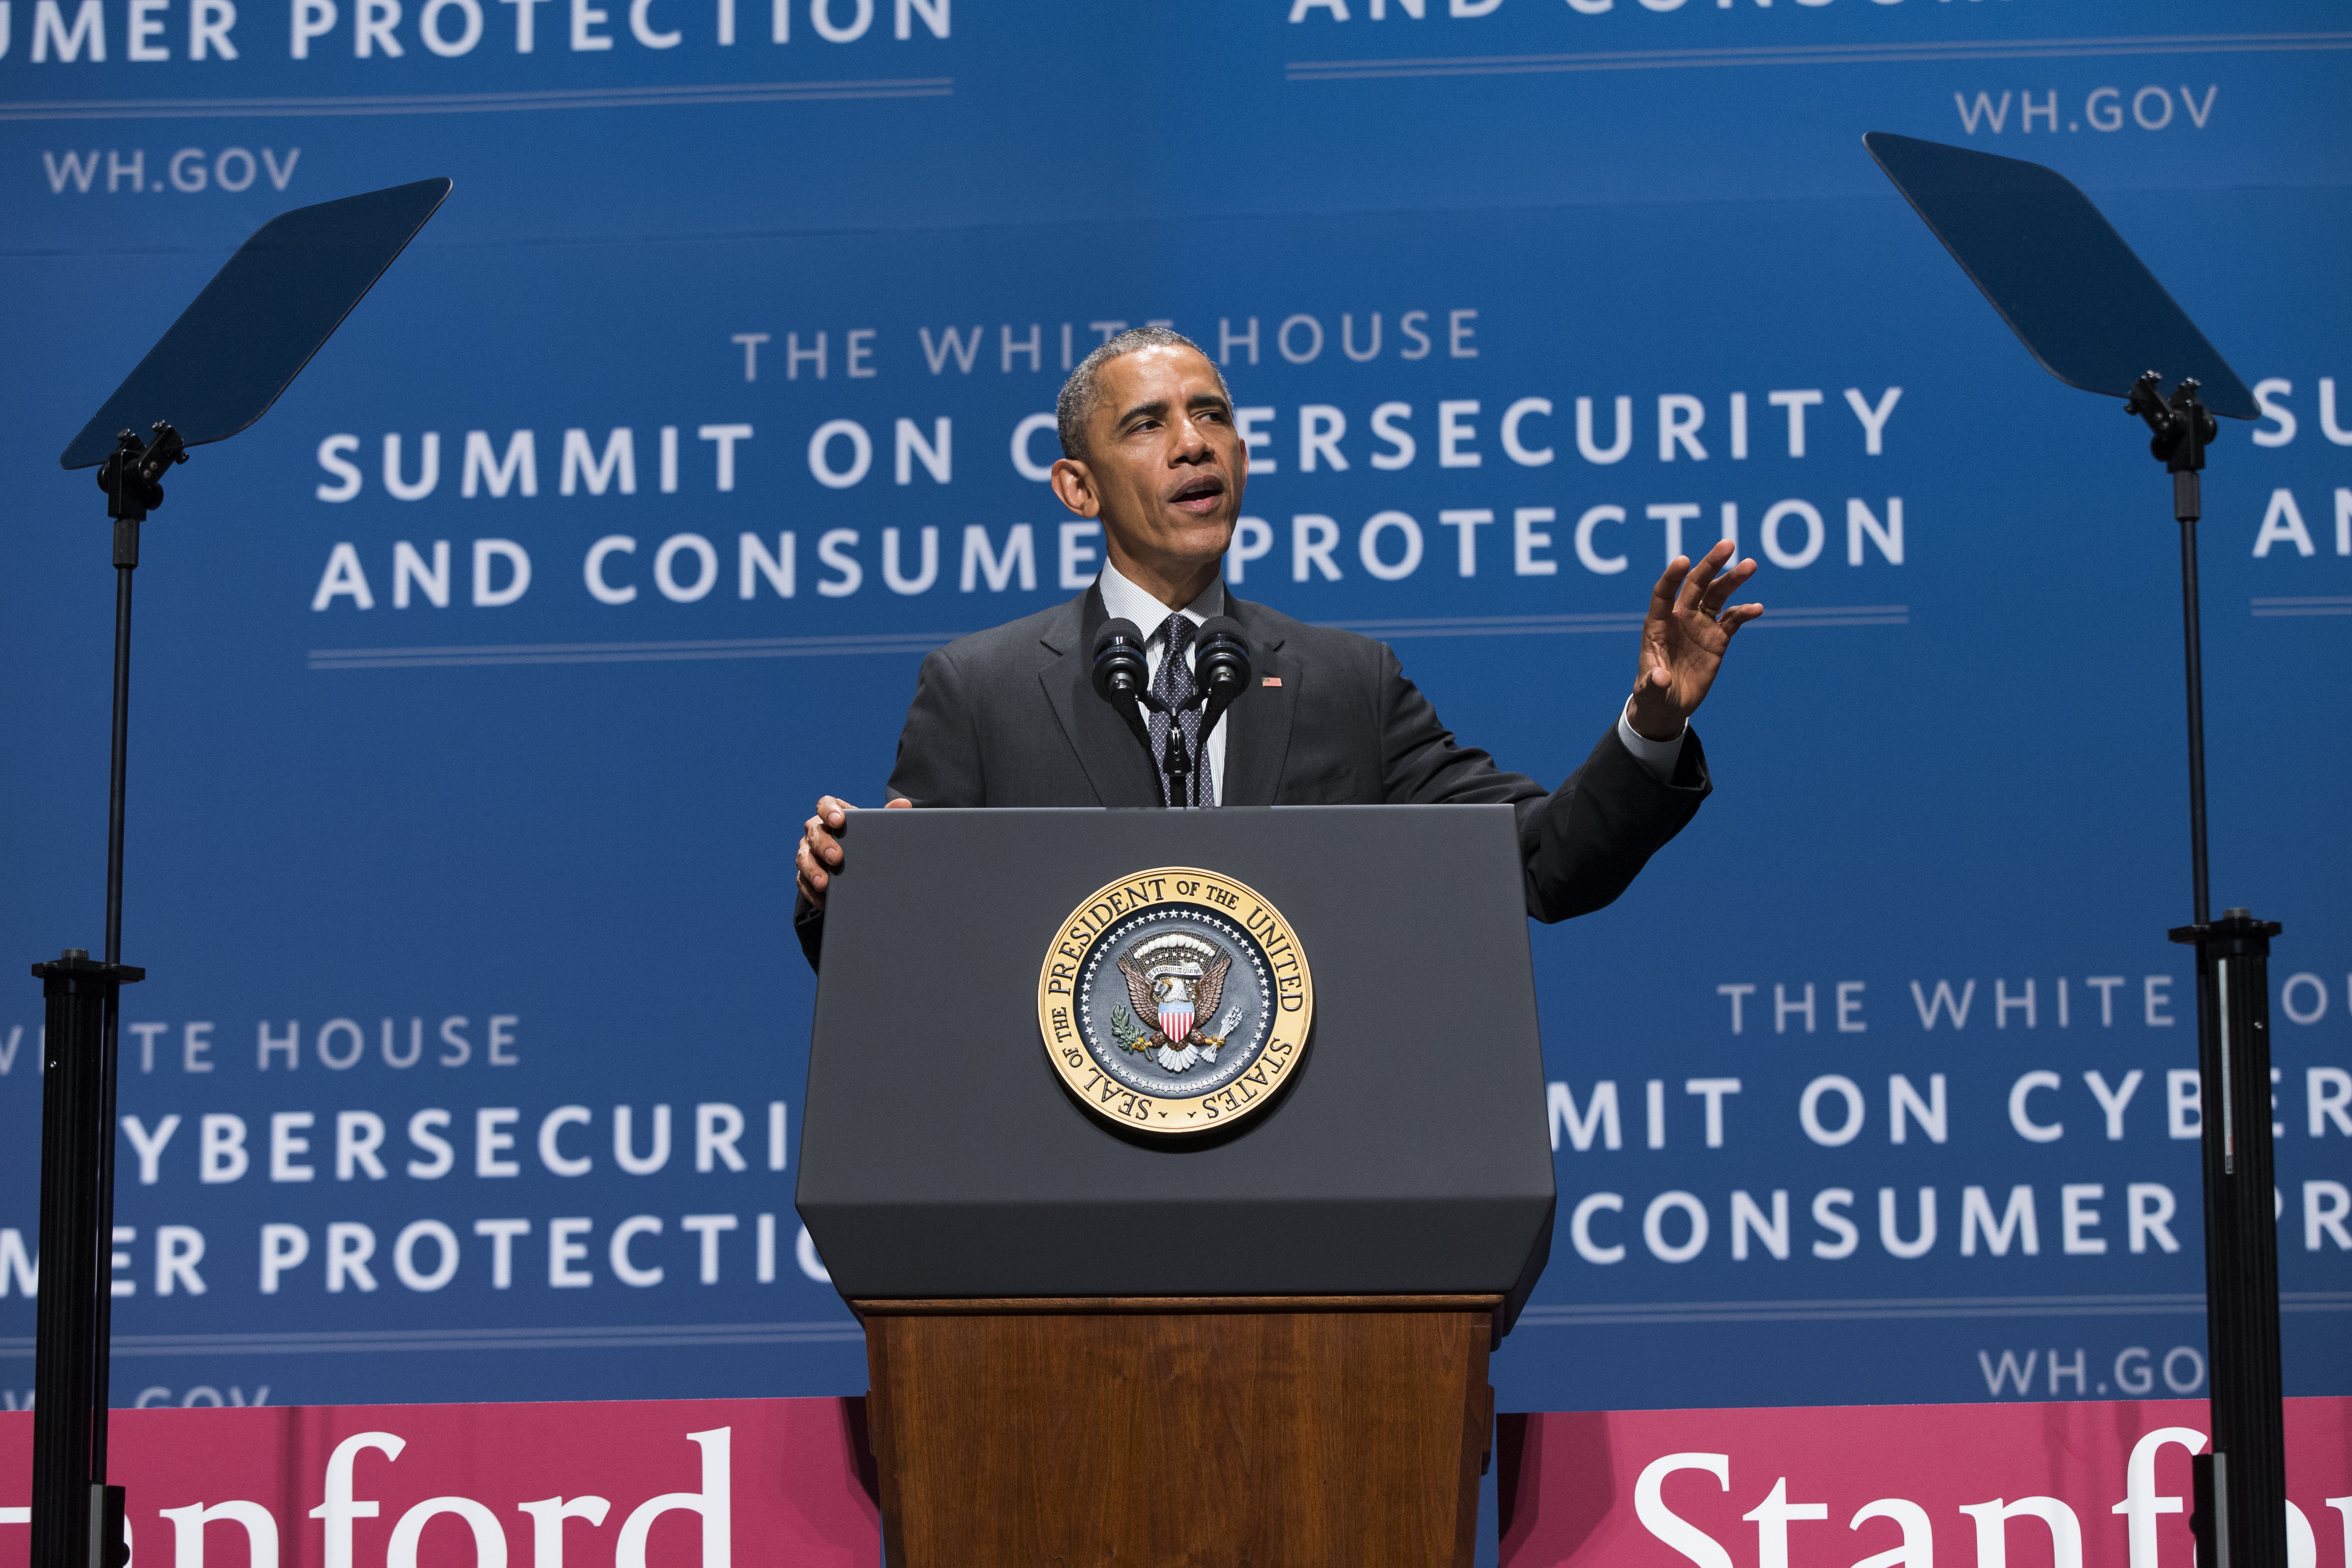 President Barack Obama speaks during a summit on cybersecurity and consumer protection, Friday, Feb. 13, 2015, at Stanford University in Palo Alto, Calif. The president said cyberspace is the new  wild West  _ with daily attempted hacks and people looking to the government to be the sheriff. He's asking the private sector to do more to help.  (AP Photo/Evan Vucci)